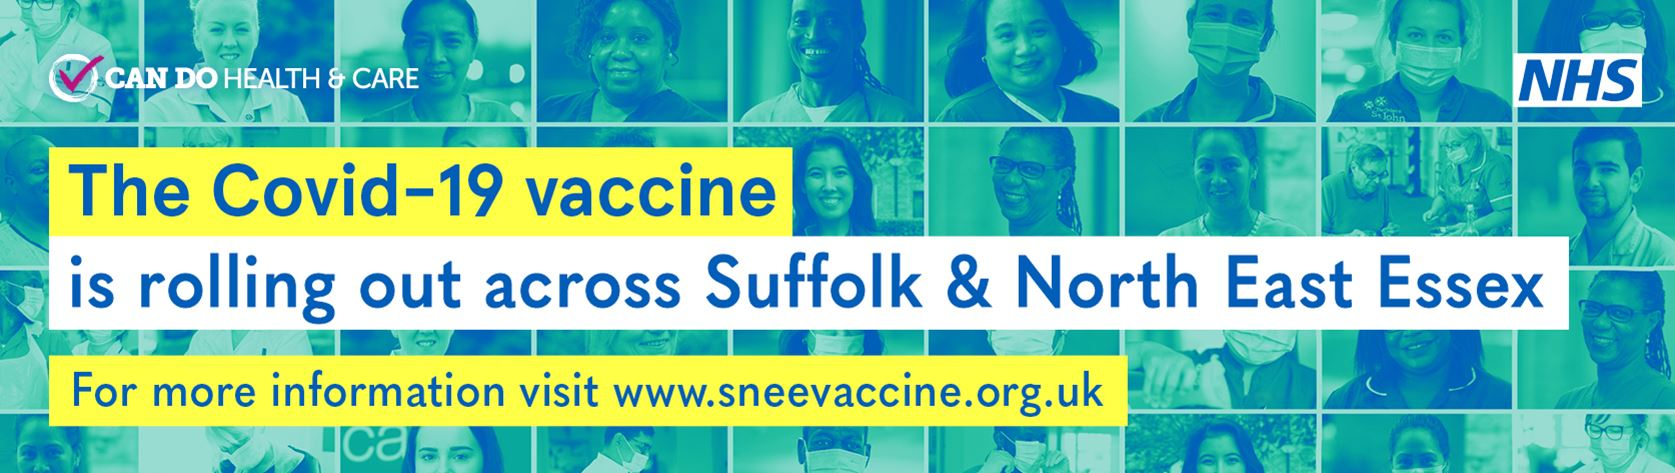 NHS Covid Vaccine